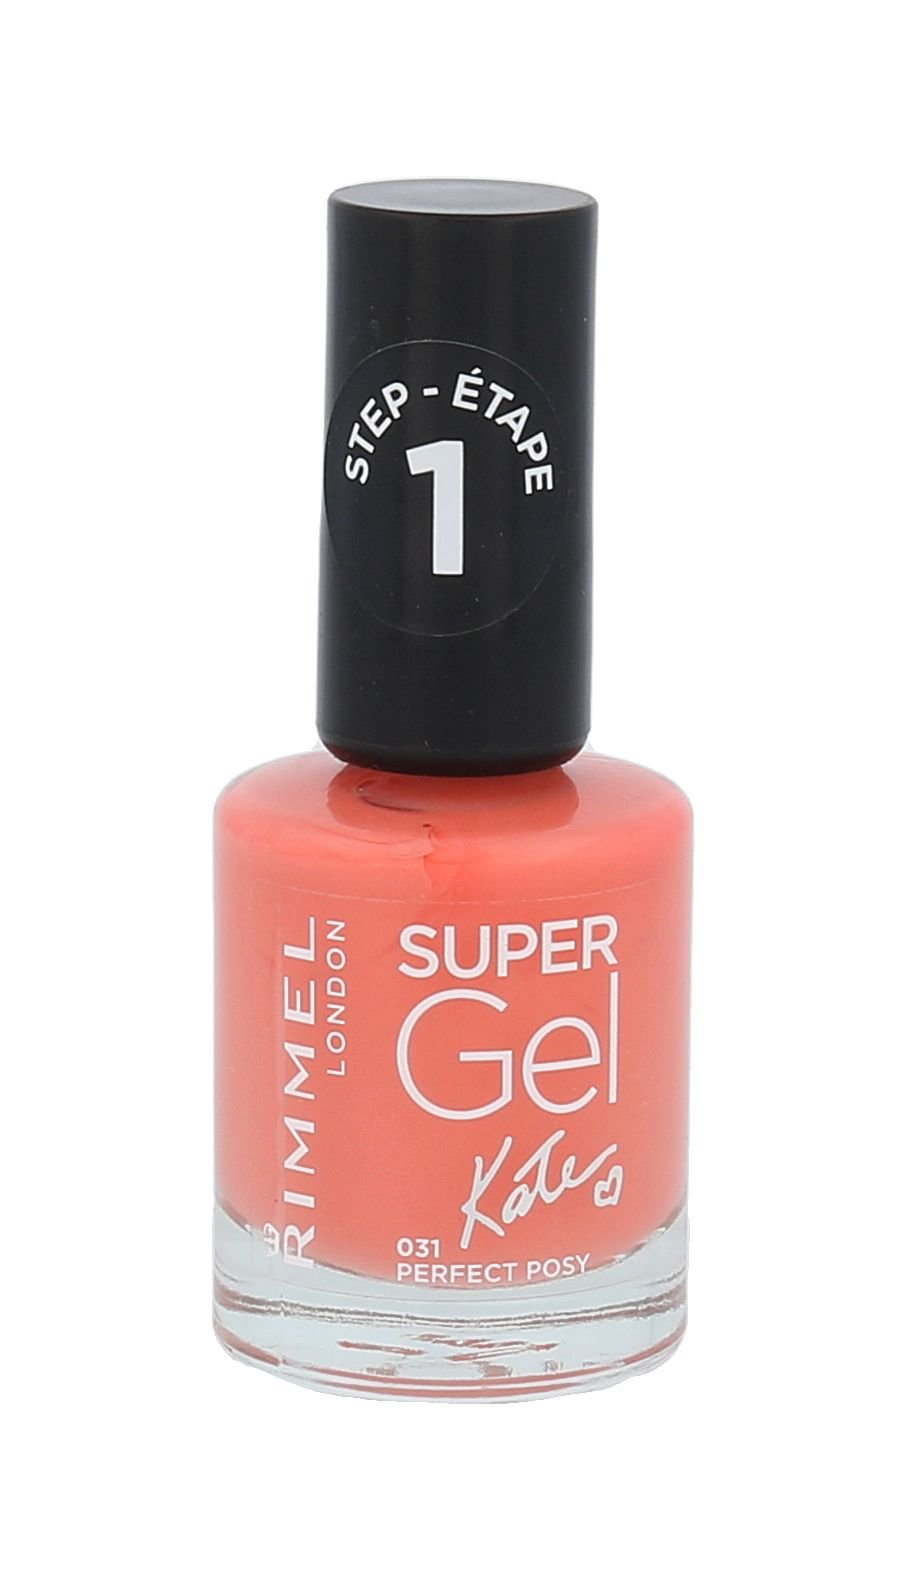 Rimmel London Super Gel By Kate Cosmetic 12ml 031 Perfect Posy